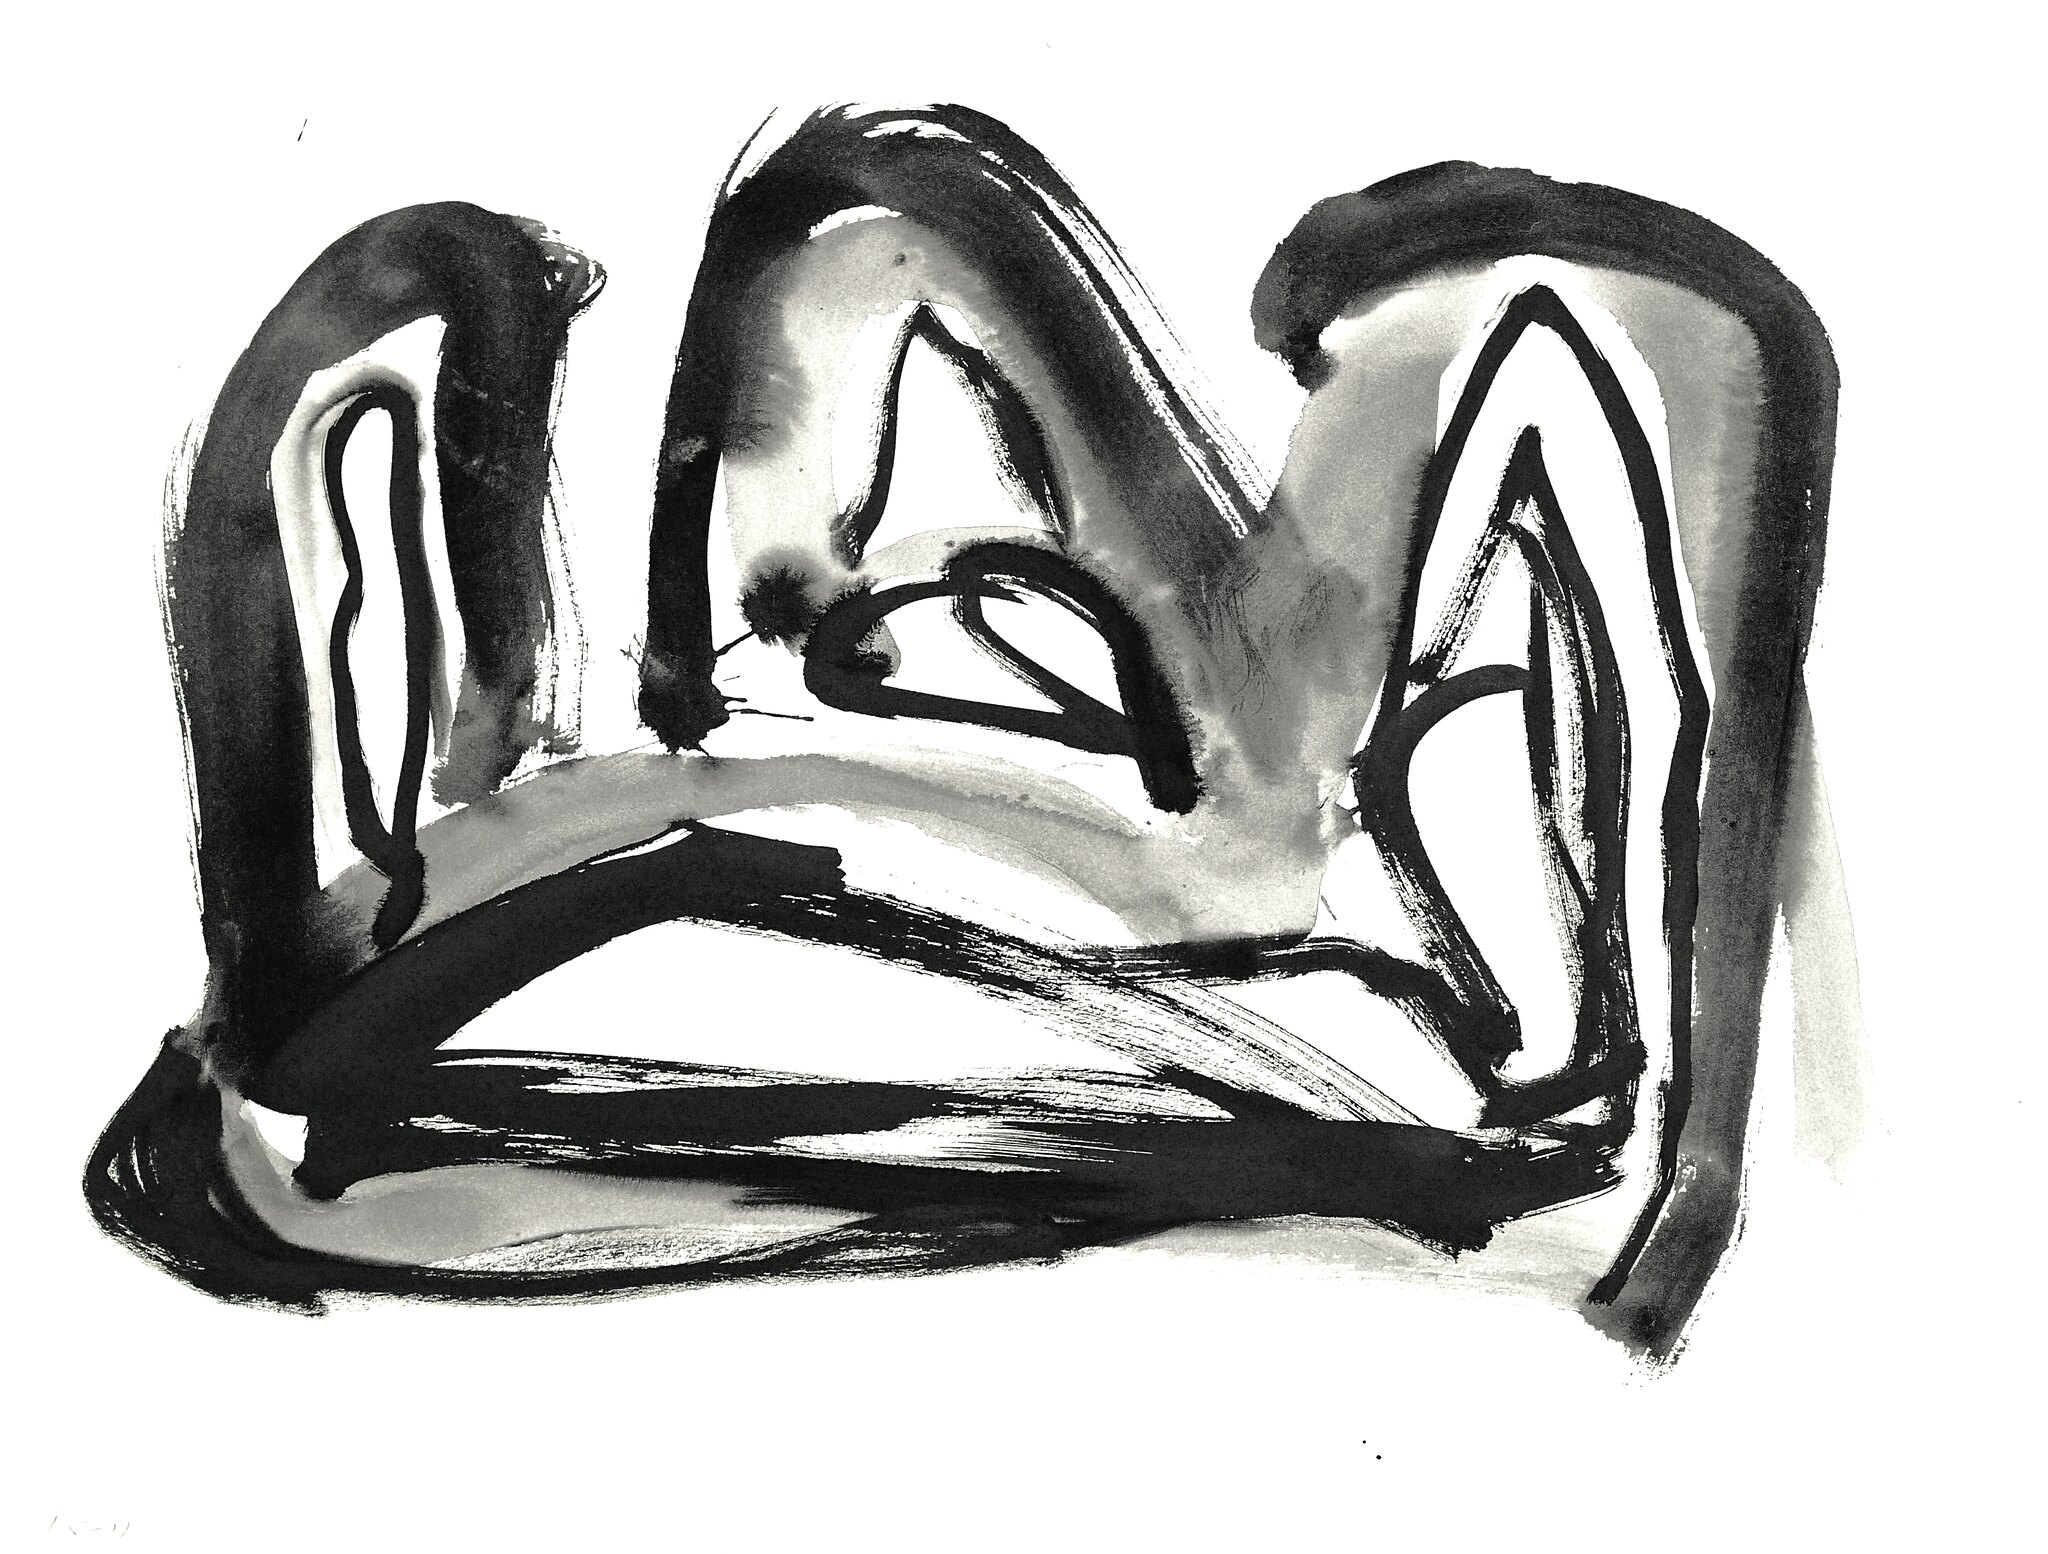 1996 - 'Abstract landscape in line' art on paper no. 6.199a' Indian ink drawing on paper; Dutch Abstract Expressionism art / Hollands abstract-expressionisme; free image in public domain / Commons, CC-BY – painter-artist, Fons Heijnsbroek